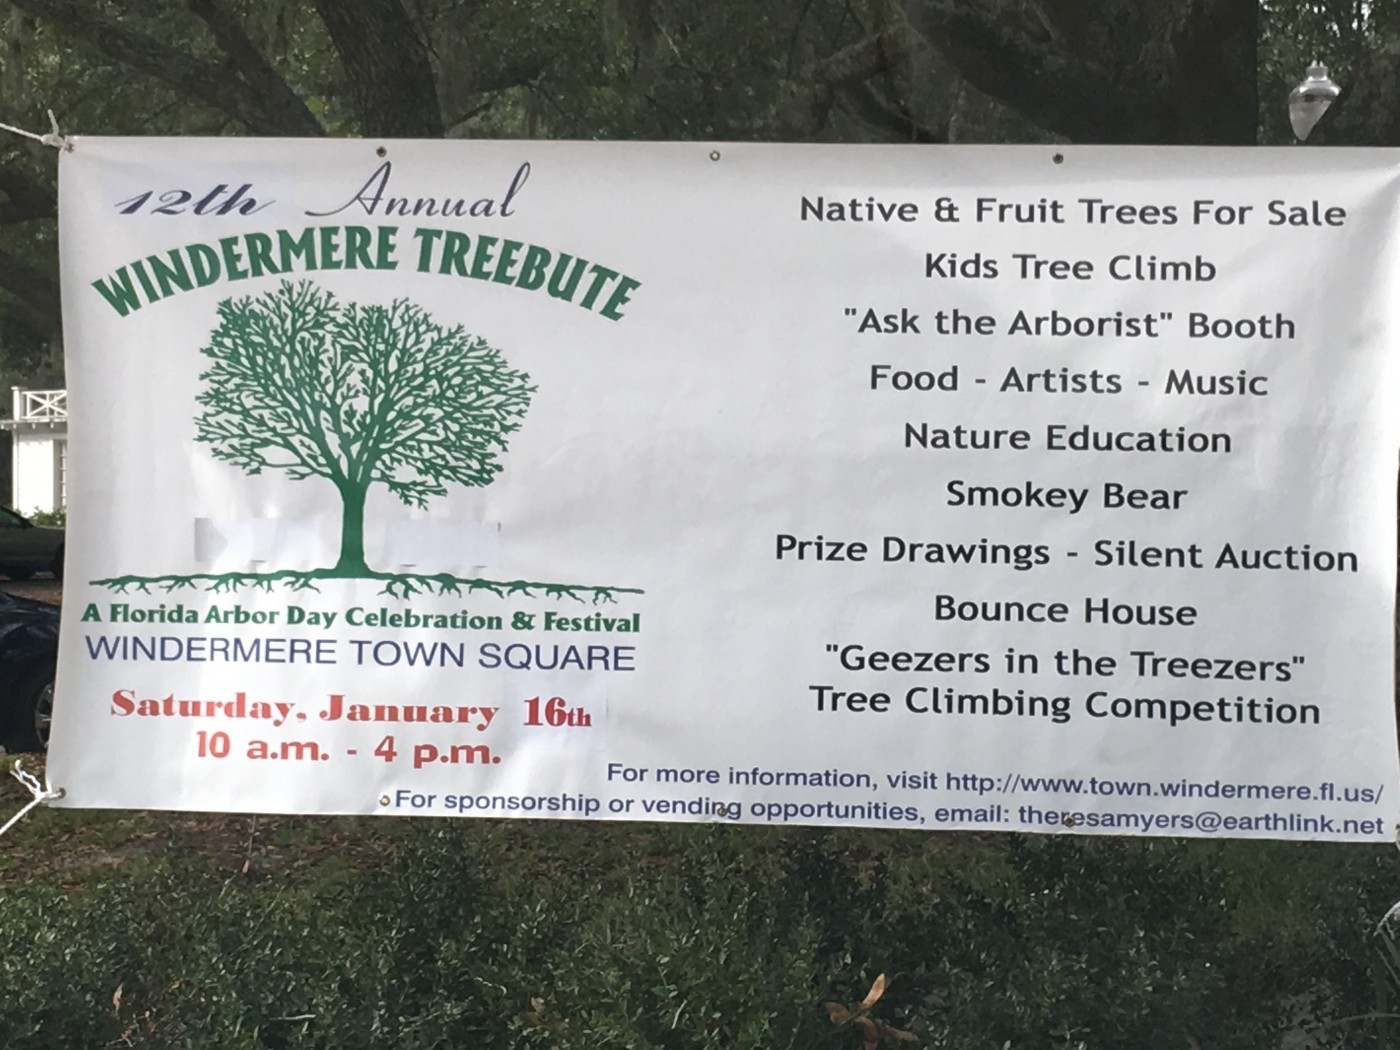 Windermere Treebute, Saturday, January 16, 2016, at Windermere Town Square (credit: Windermere Sun-Susan Sun Nunamaker)